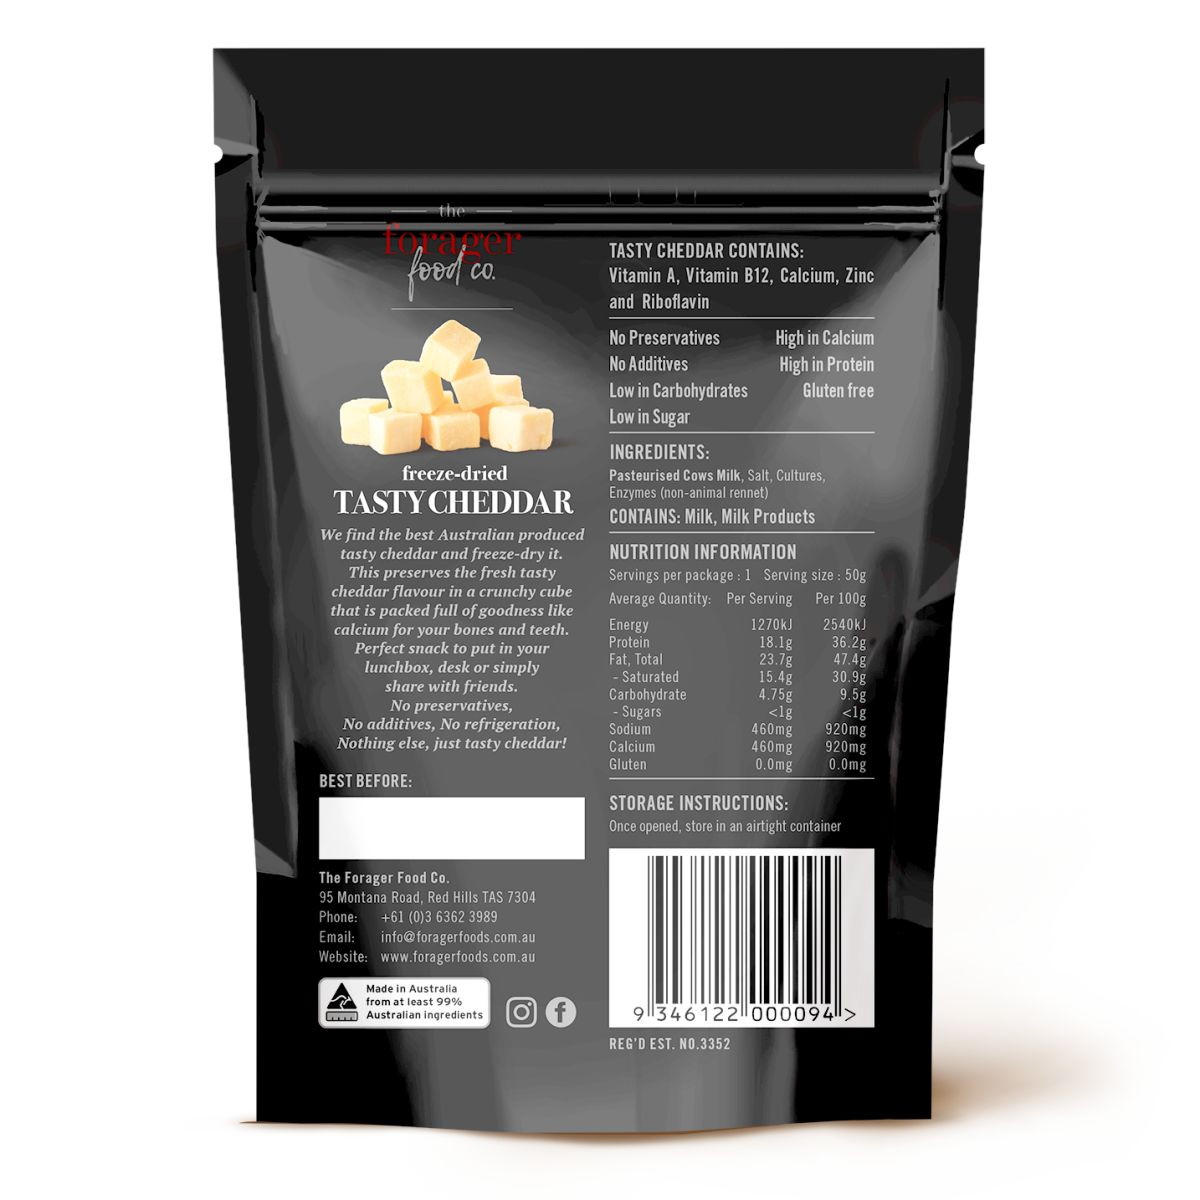 The Forager Food Co. - Freeze-Dried Tasty Cheddar Cheese